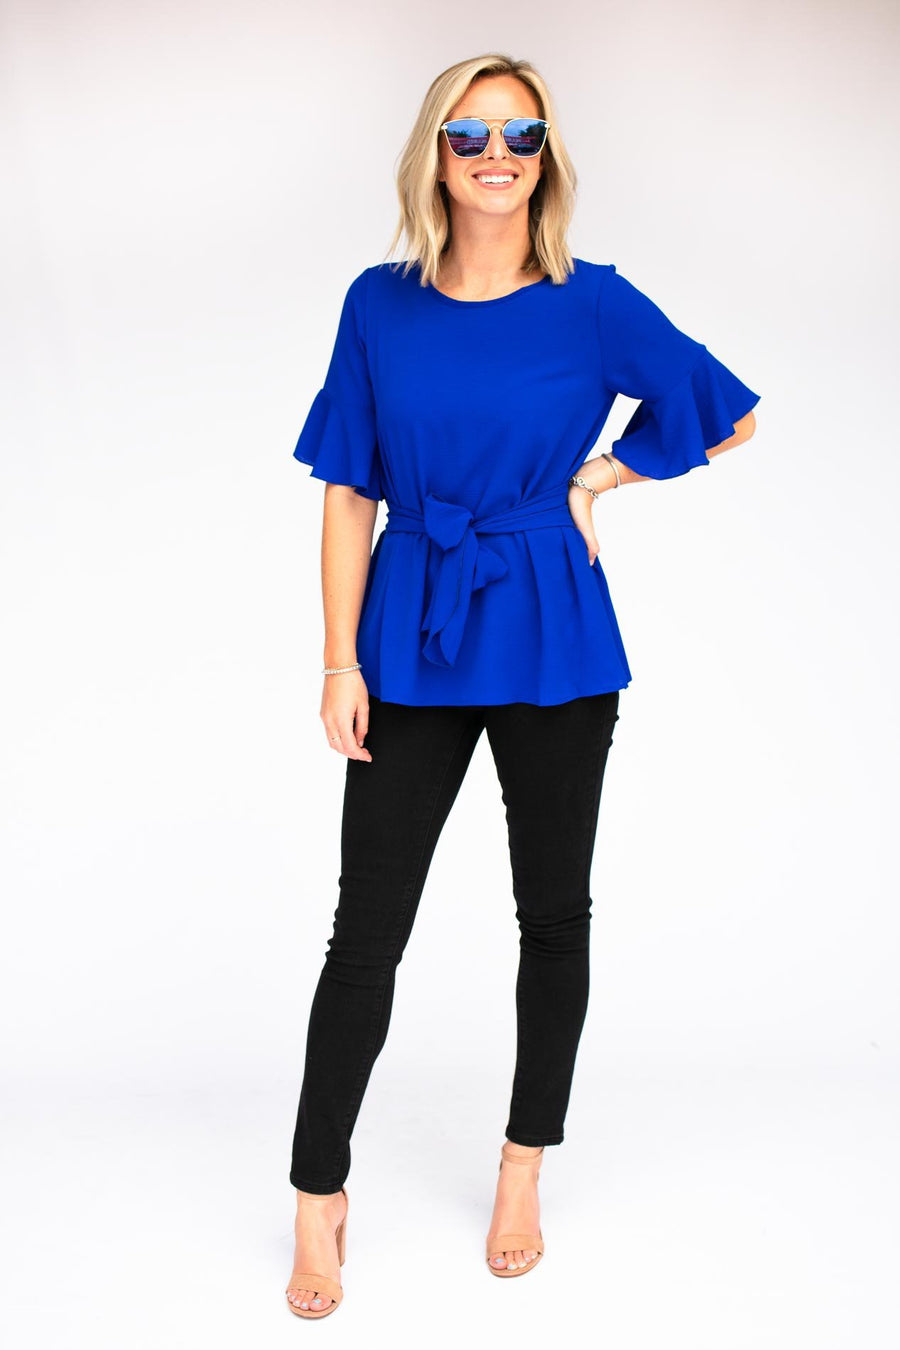 Tops Want and Need Tie Waist Top - Royal  - Lotus Boutique